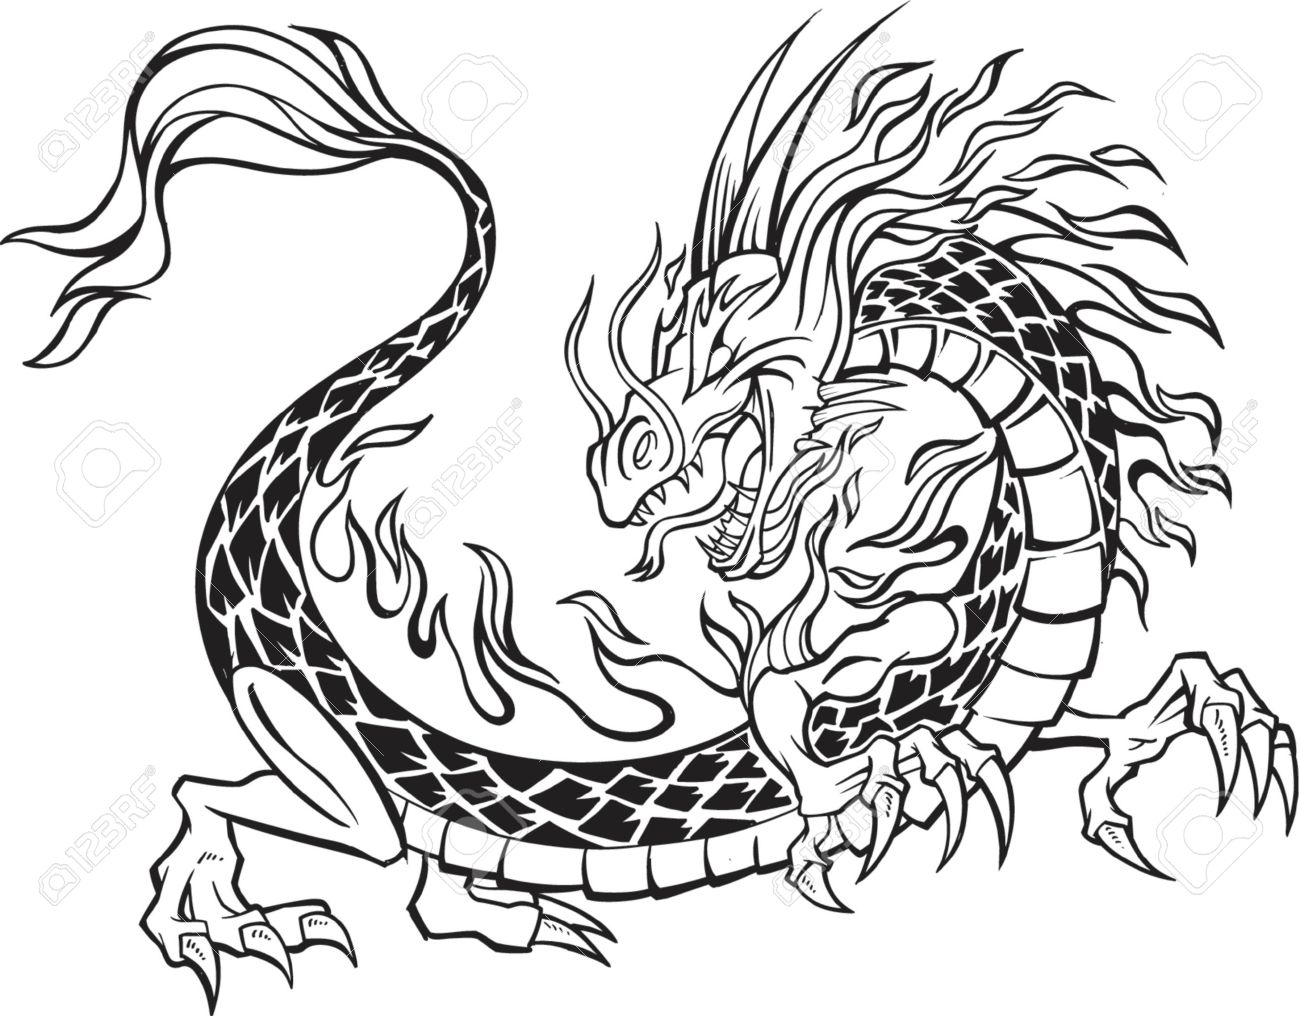 Dragon Vector Illustration Stock Vector - 892648